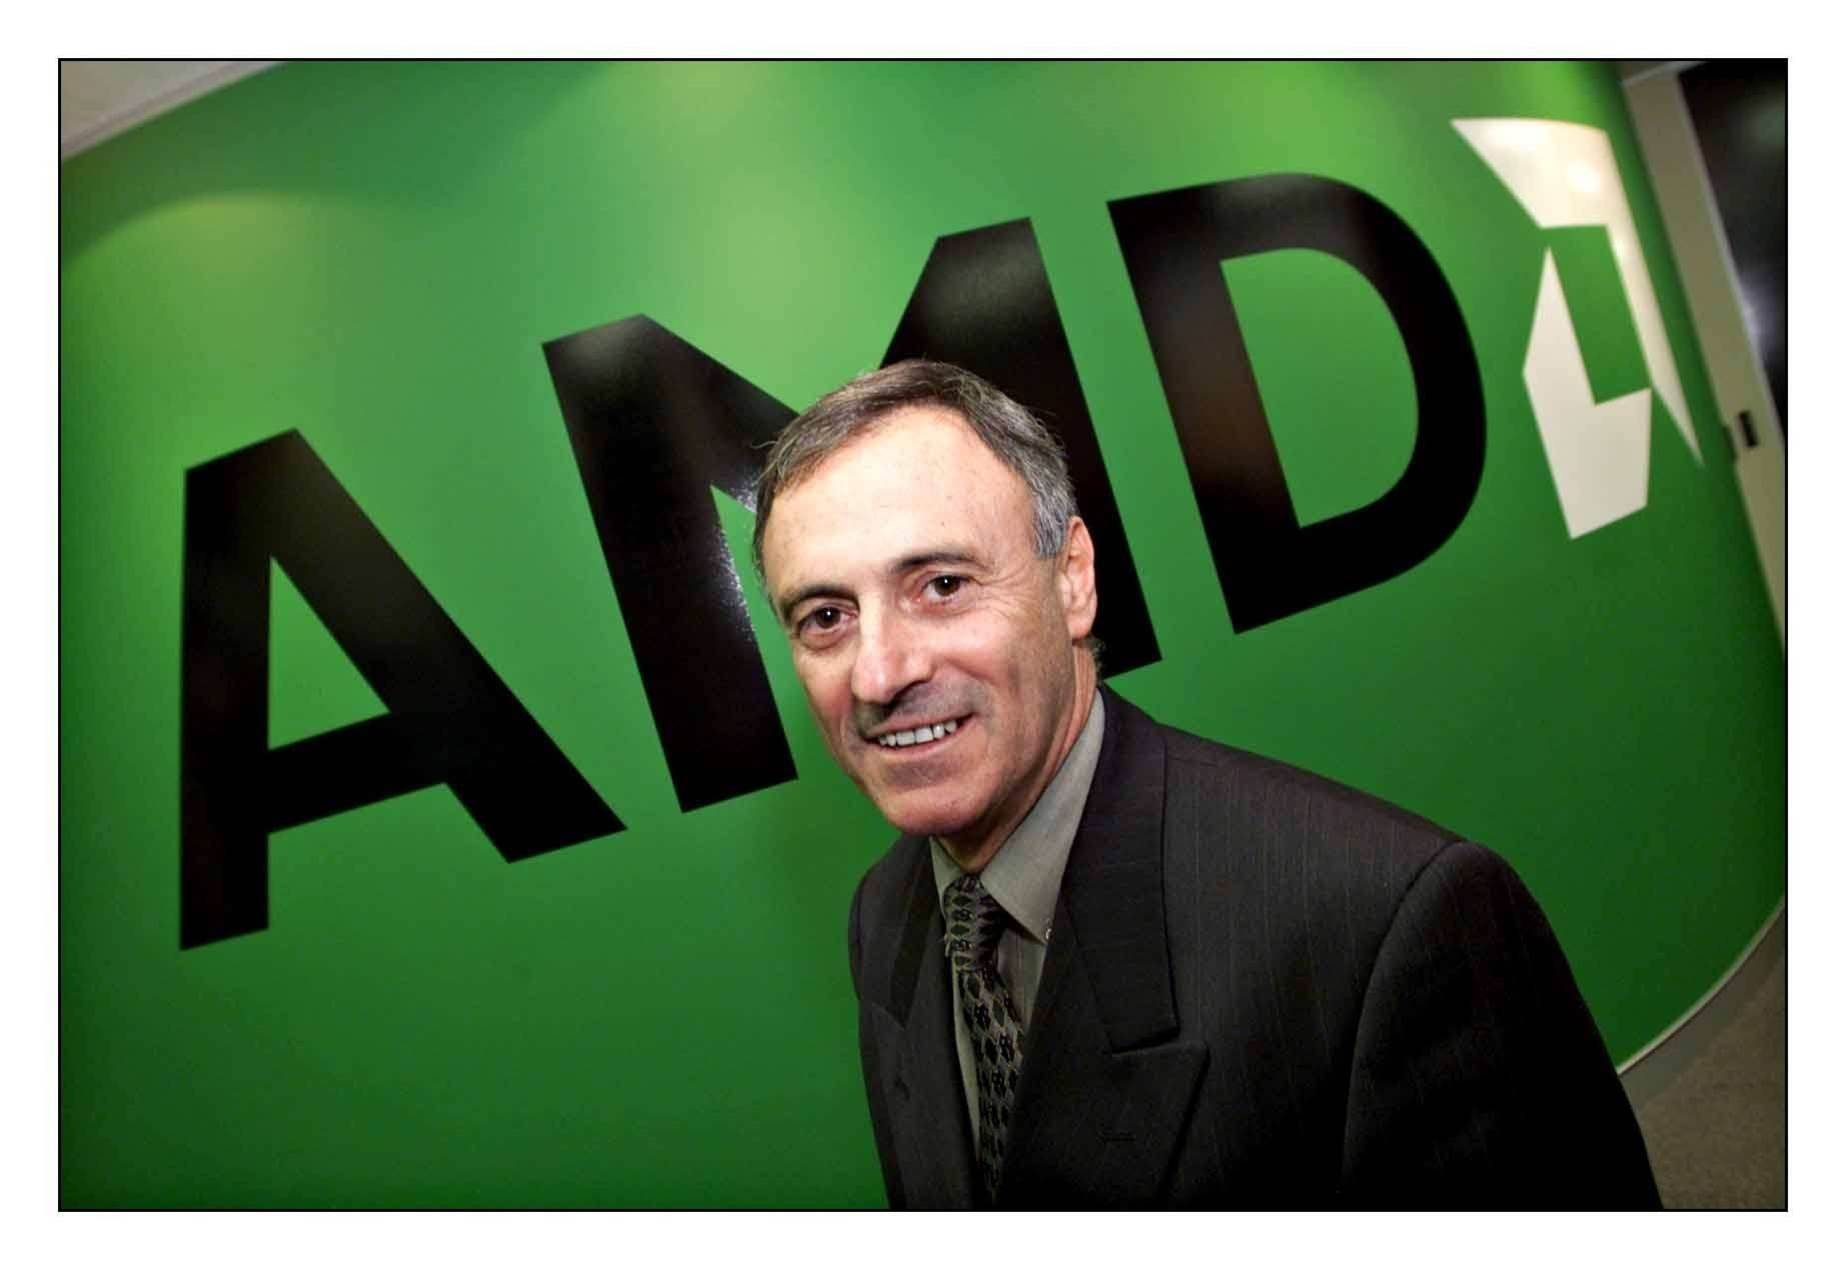 Altech hires ex-AMD country manager